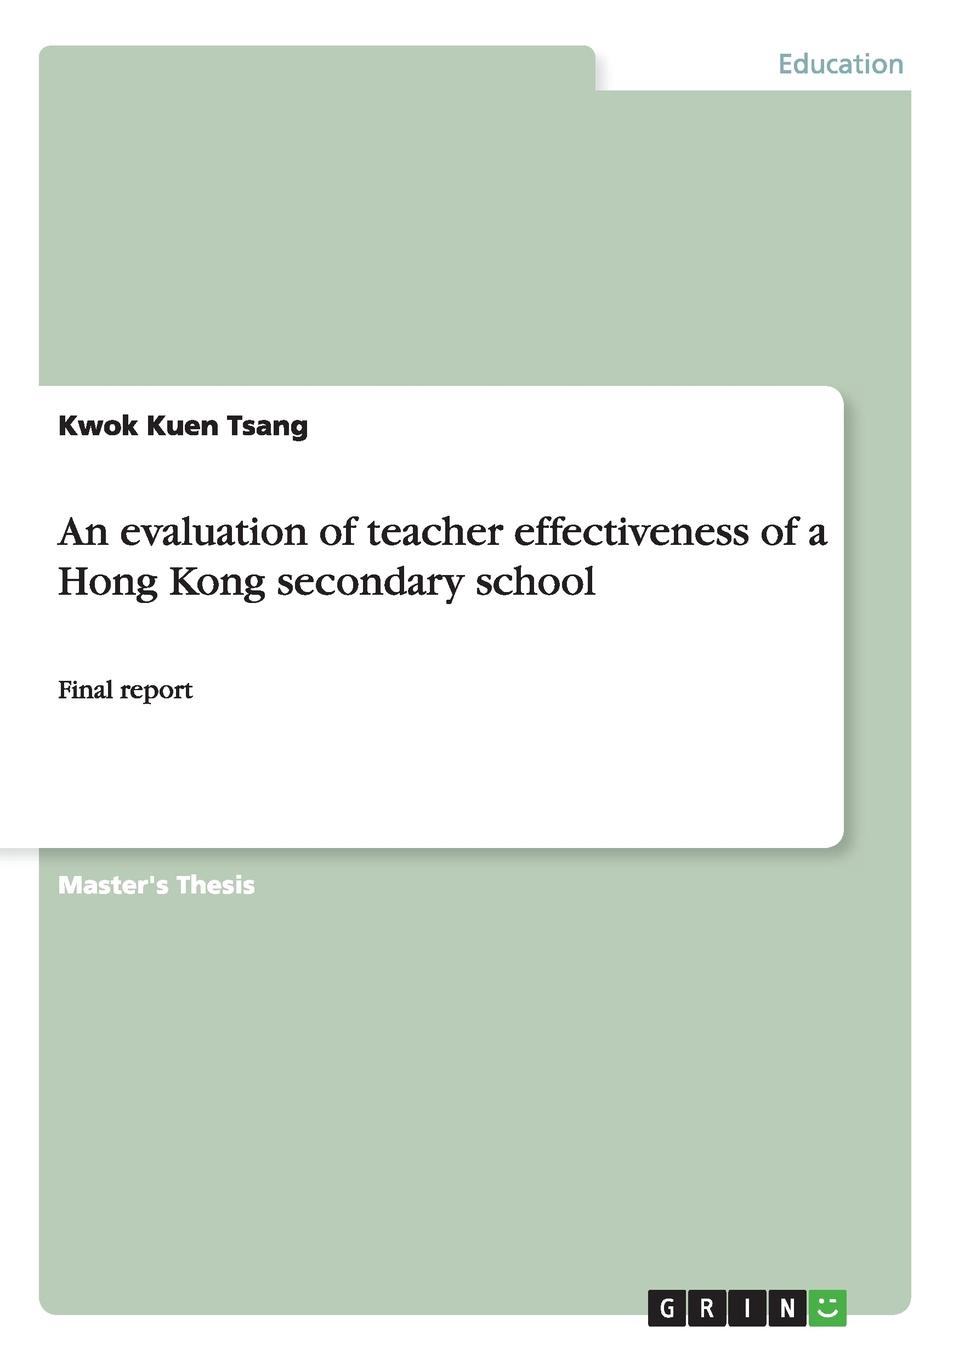 Kwok Kuen Tsang An evaluation of teacher effectiveness of a Hong Kong secondary school nara françoise monkam the money moving syndrome and the effectiveness of